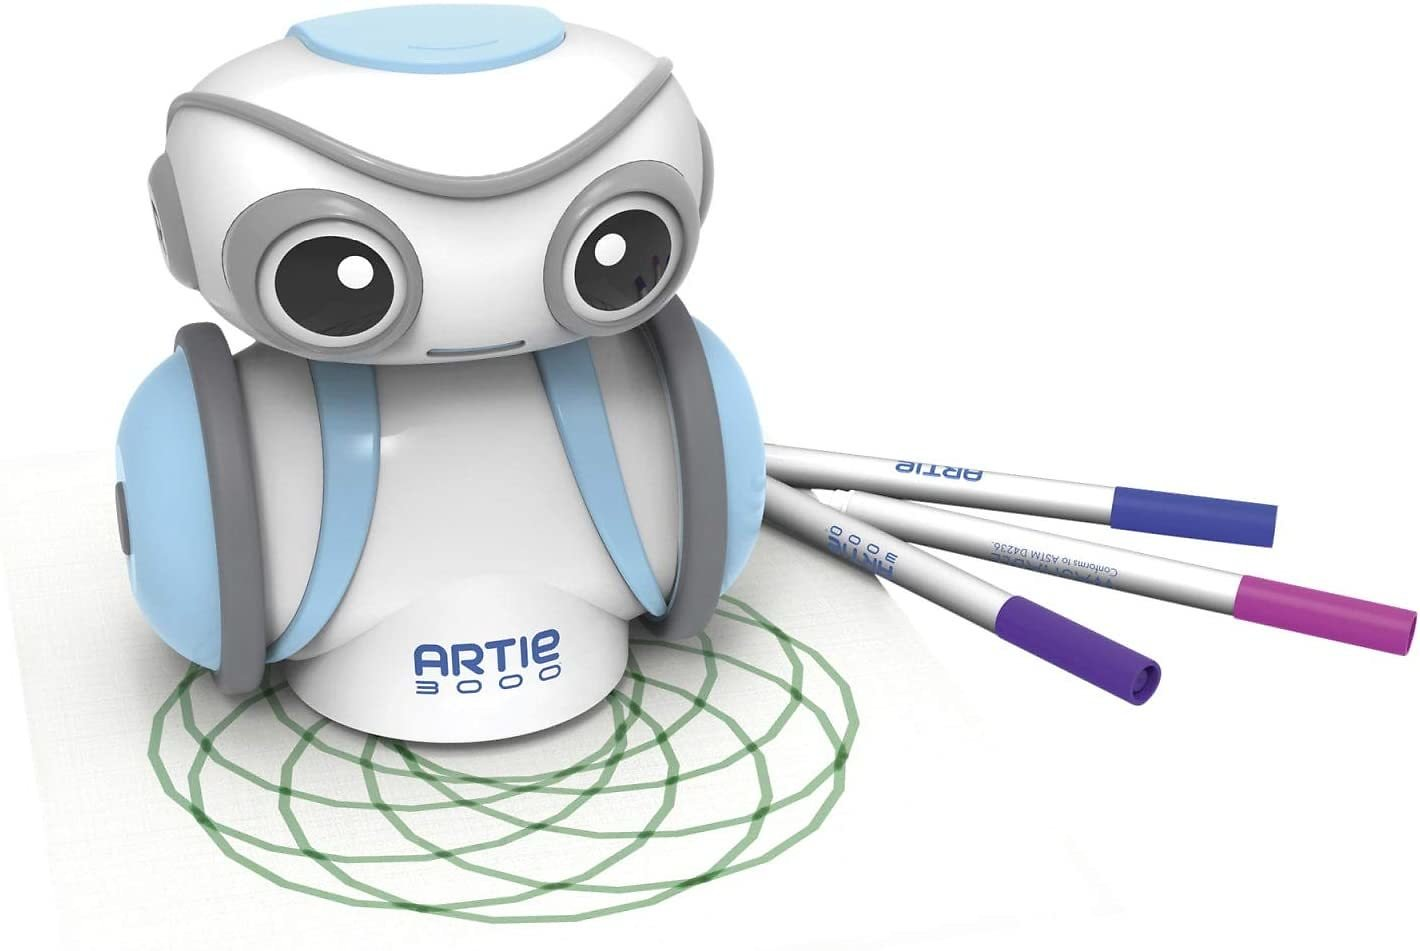 Educational Insights Artie 3000 The Coding Robot: Stem Toy, Coding Robot for Kids